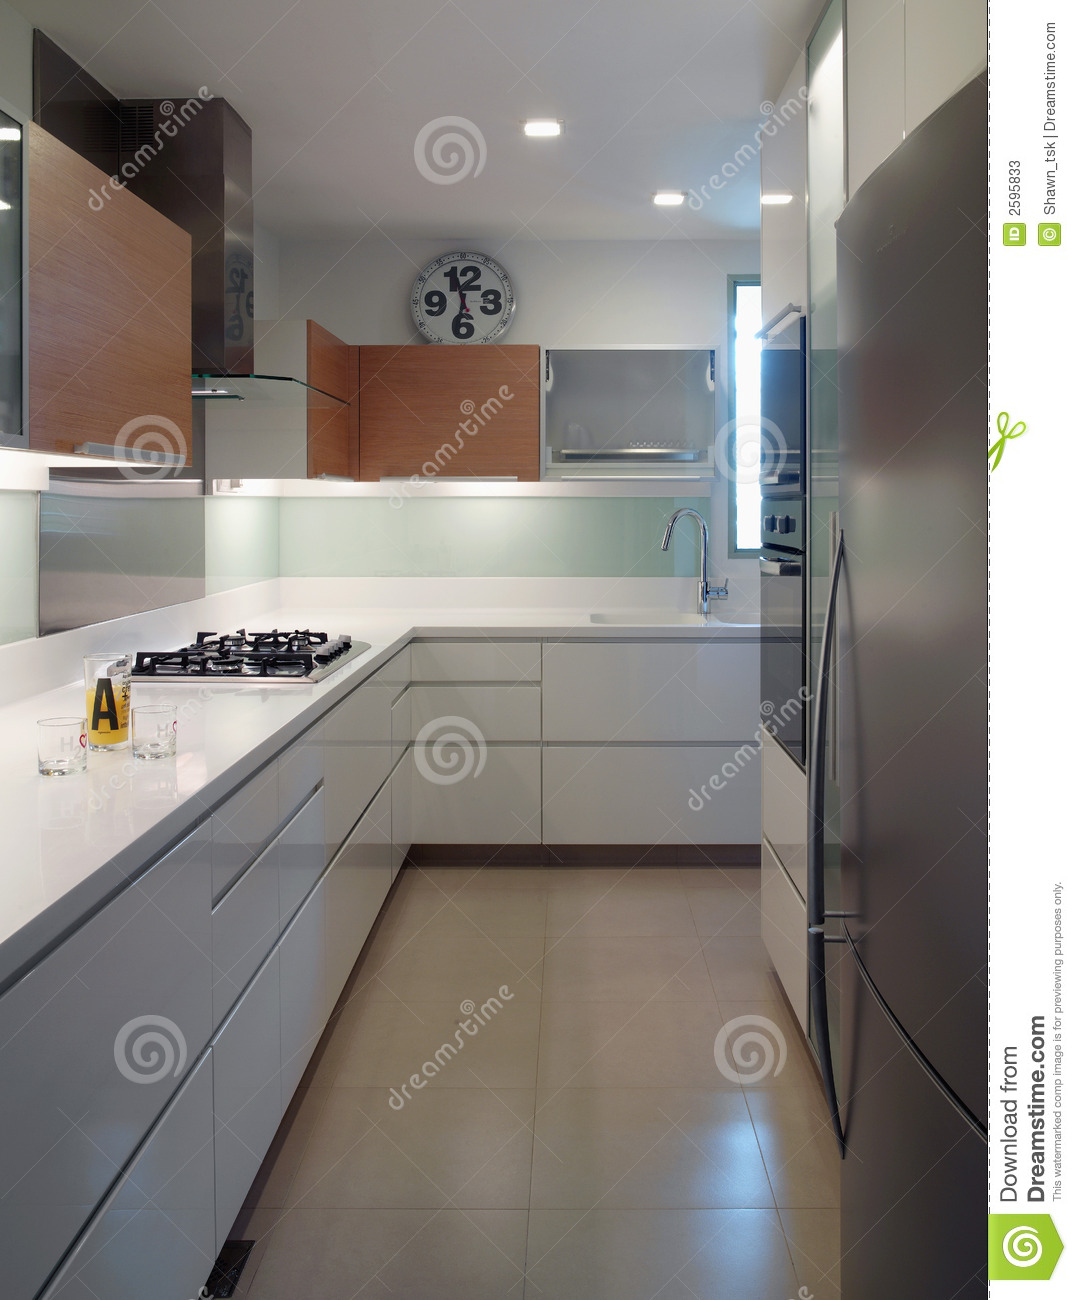 Interior Design Kitchen Stock Photos Image 2595833